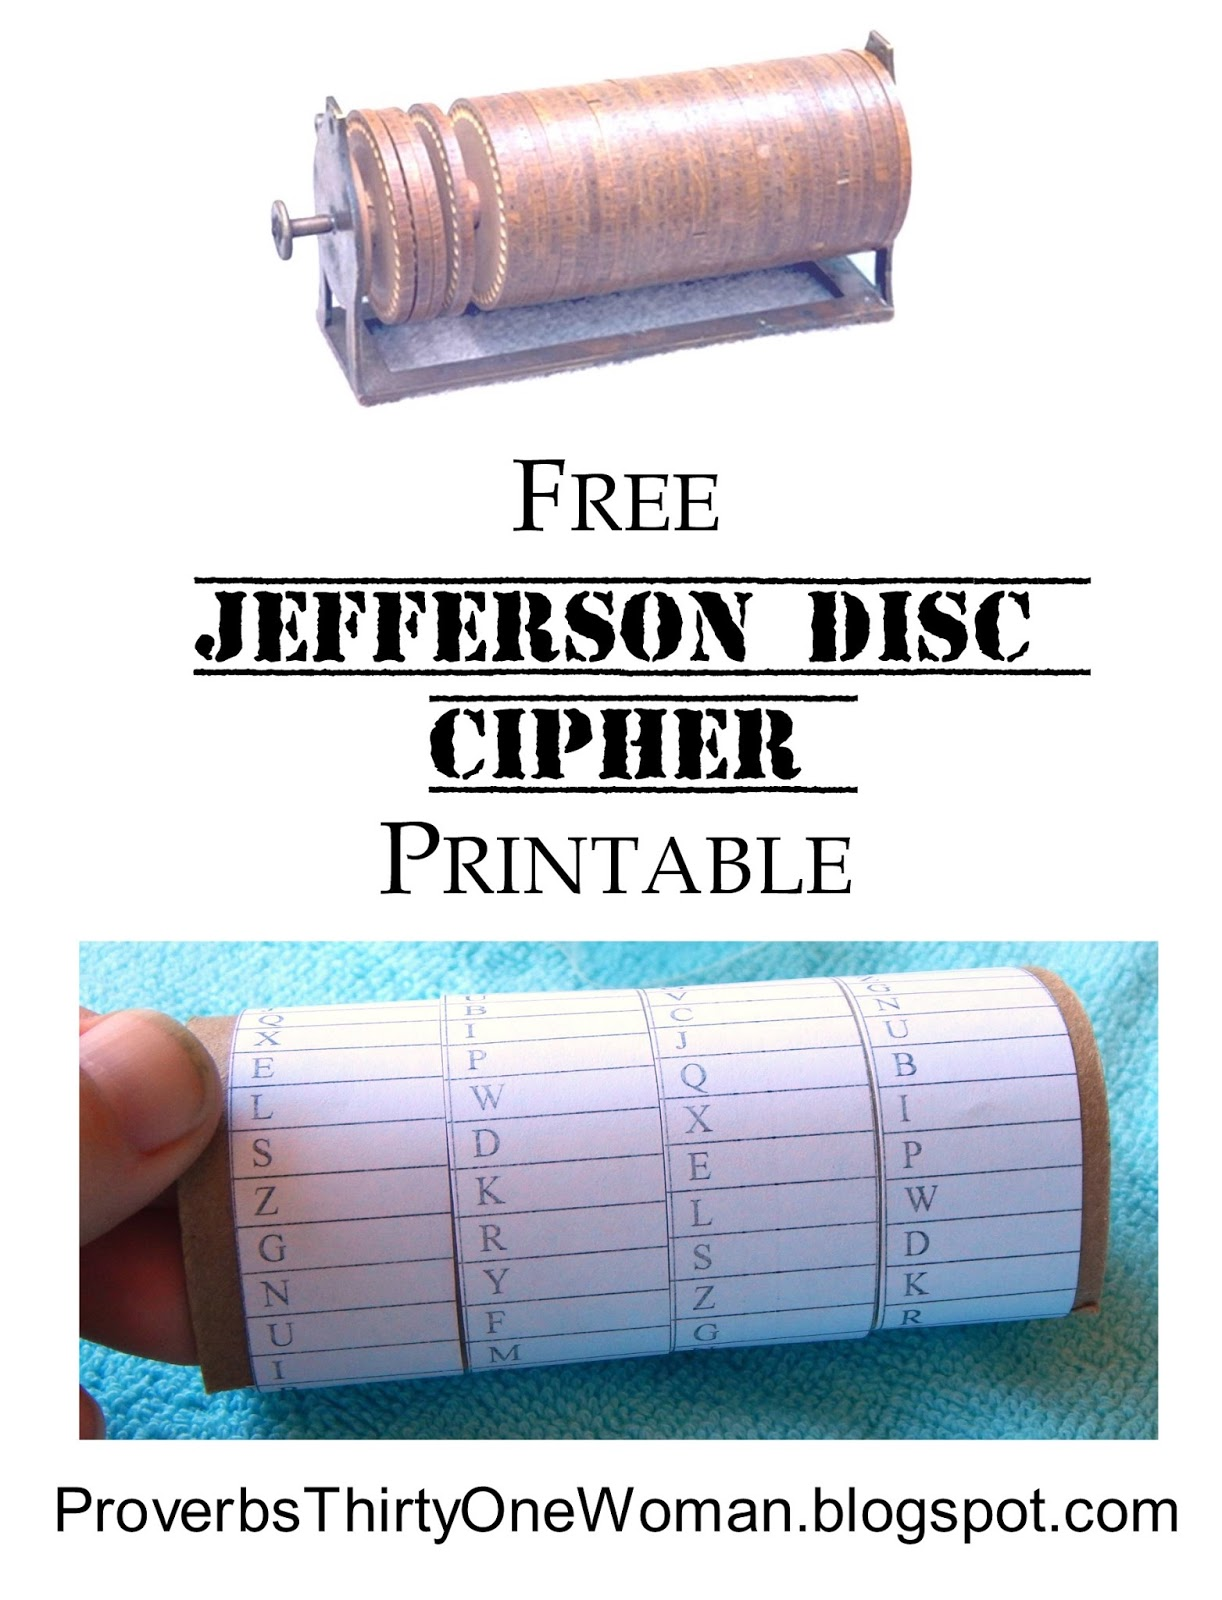 Proverbs 31 Woman: Free Jefferson Disc Cipher Printable